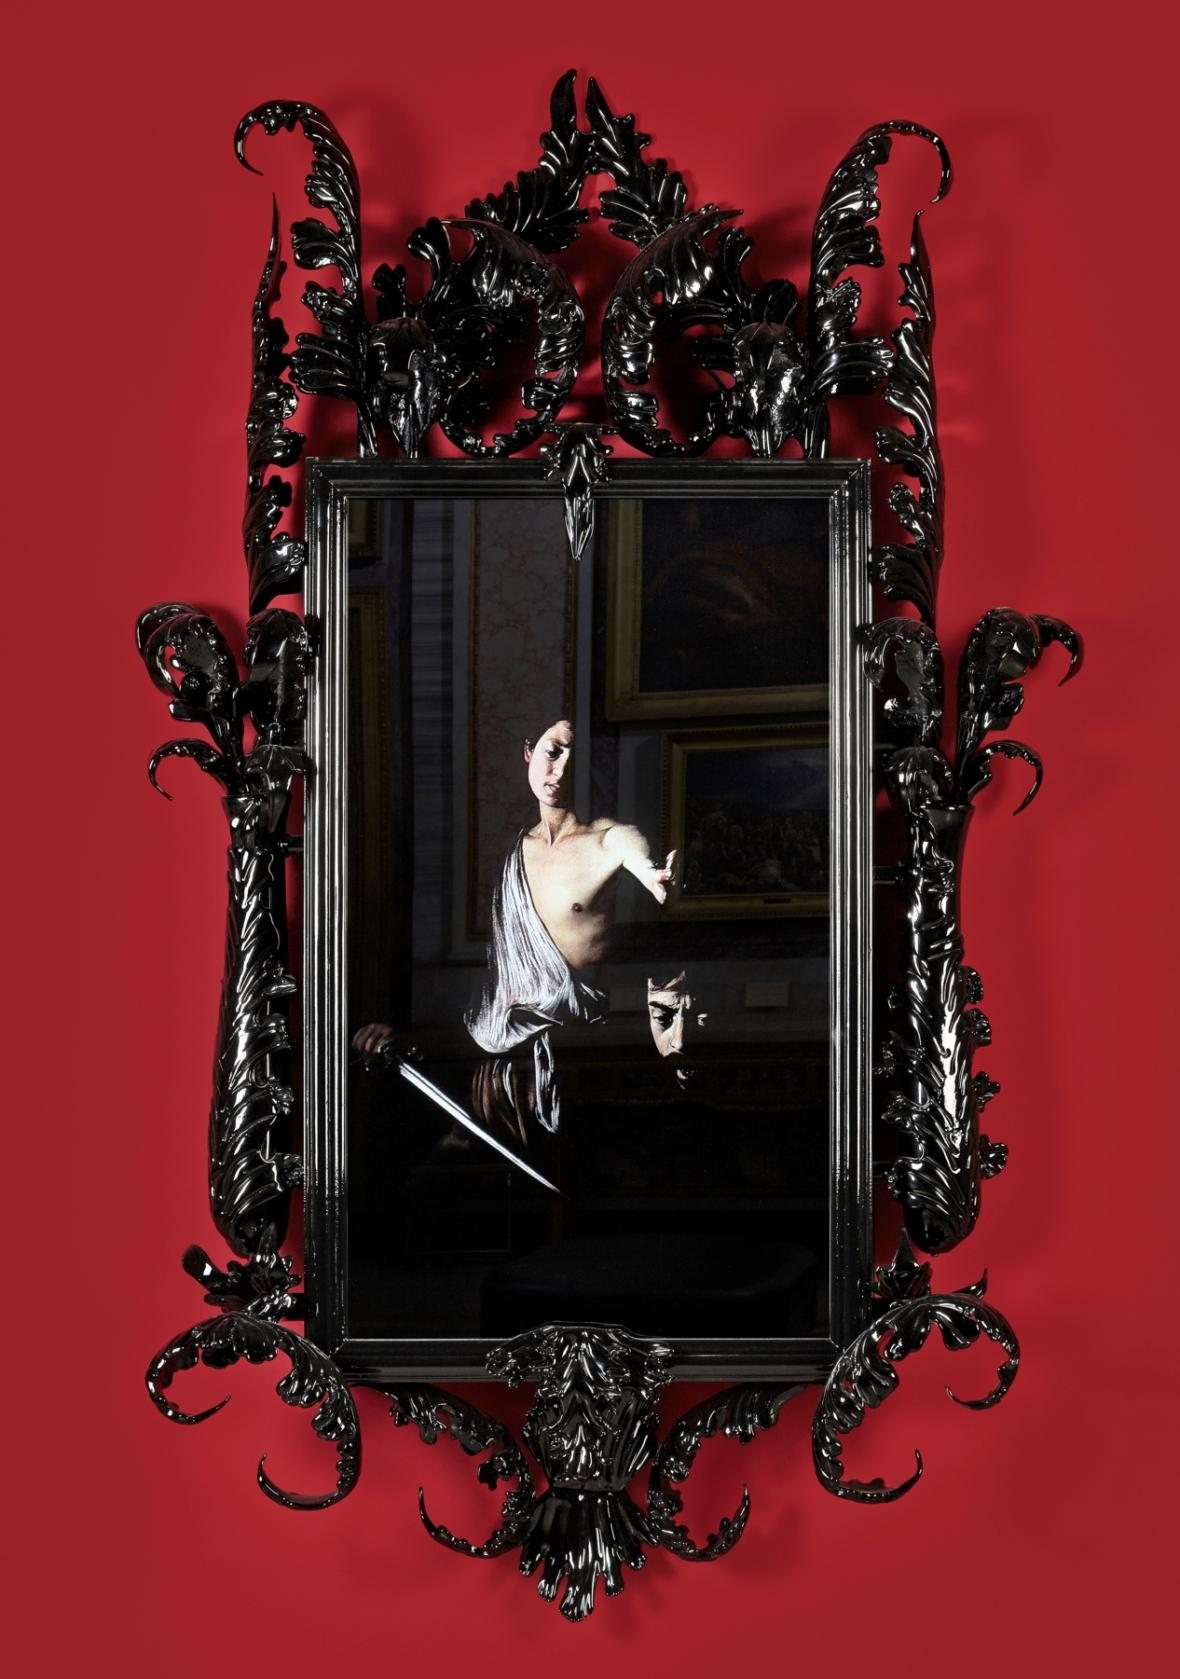 Mat Collishaw / Black Mirror, Hydrus, 2014